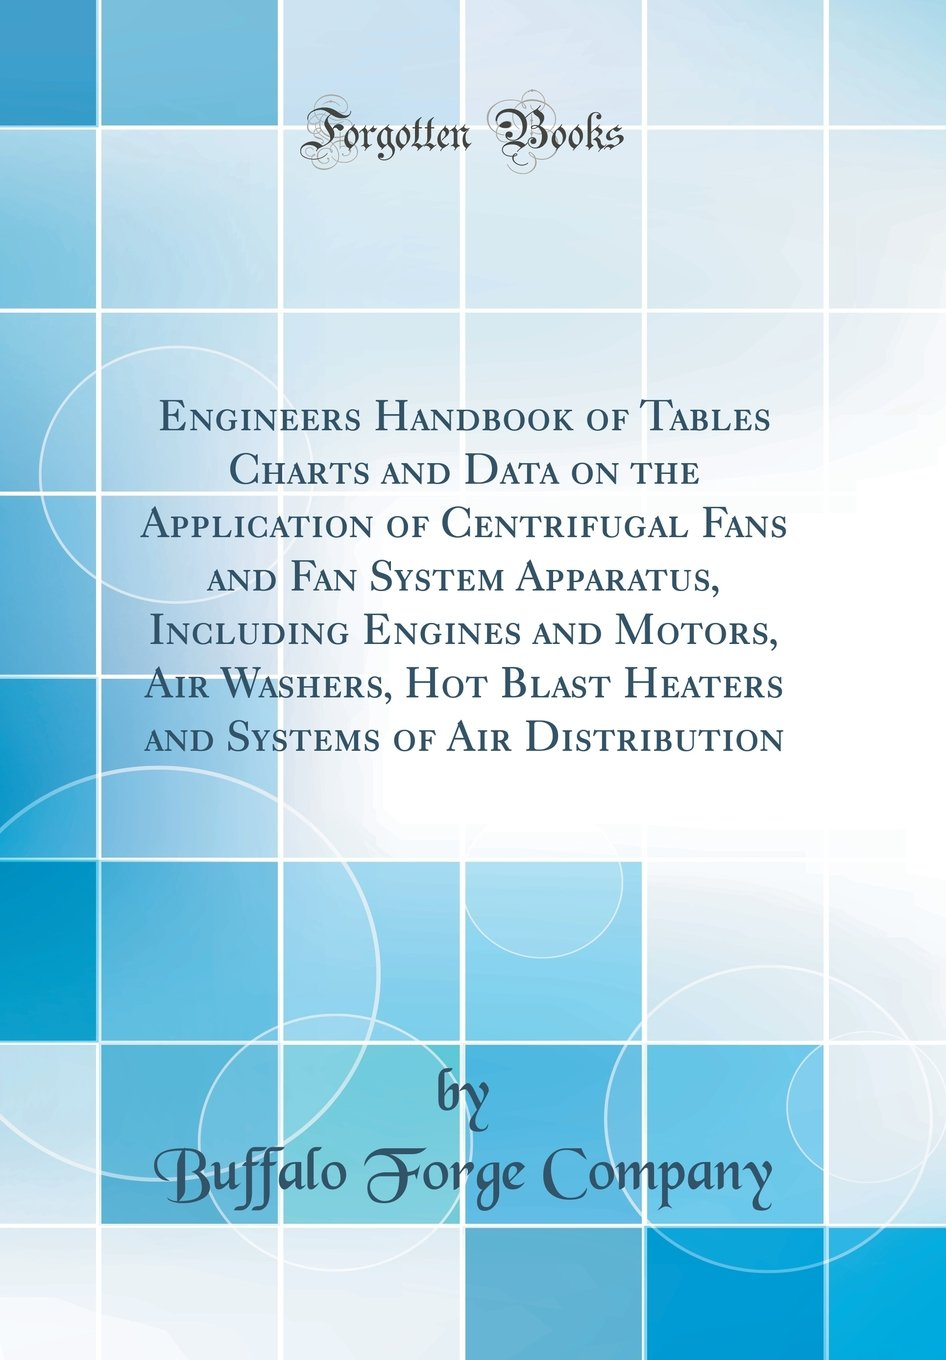 Engineers Handbook of Tables Charts and Data on the Application of Centrifugal Fans and Fan System Apparatus, Including Engines and Motors, Air ... Systems of Air Distribution (Classic Reprint) PDF